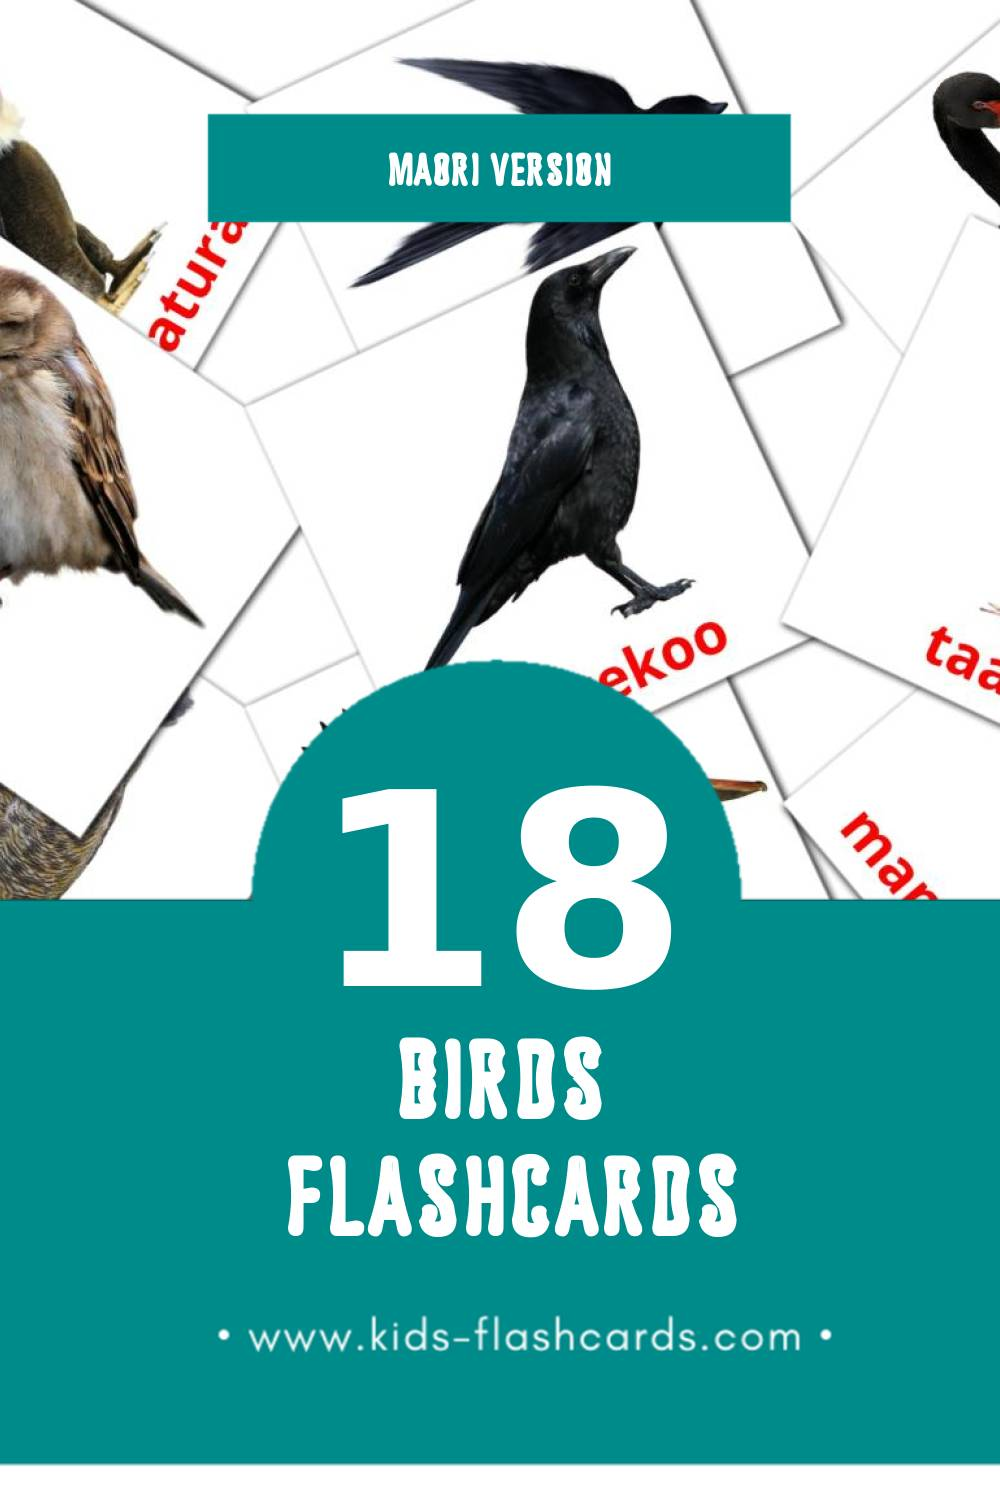 Visual Manu Flashcards for Toddlers (18 cards in Maori)